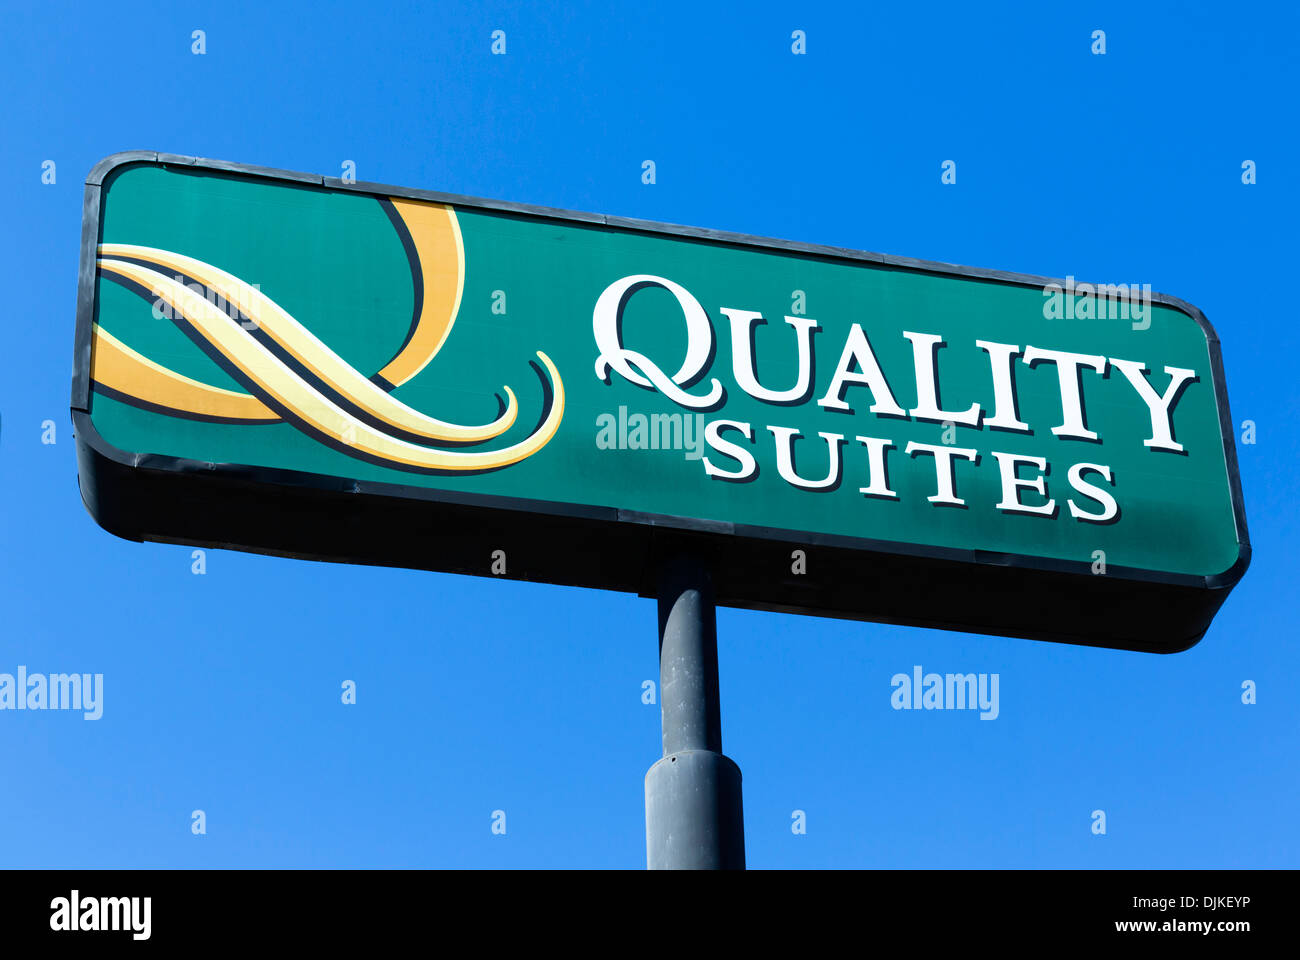 Quality Suites Hotel sign, Central Florida, USA Photo Stock